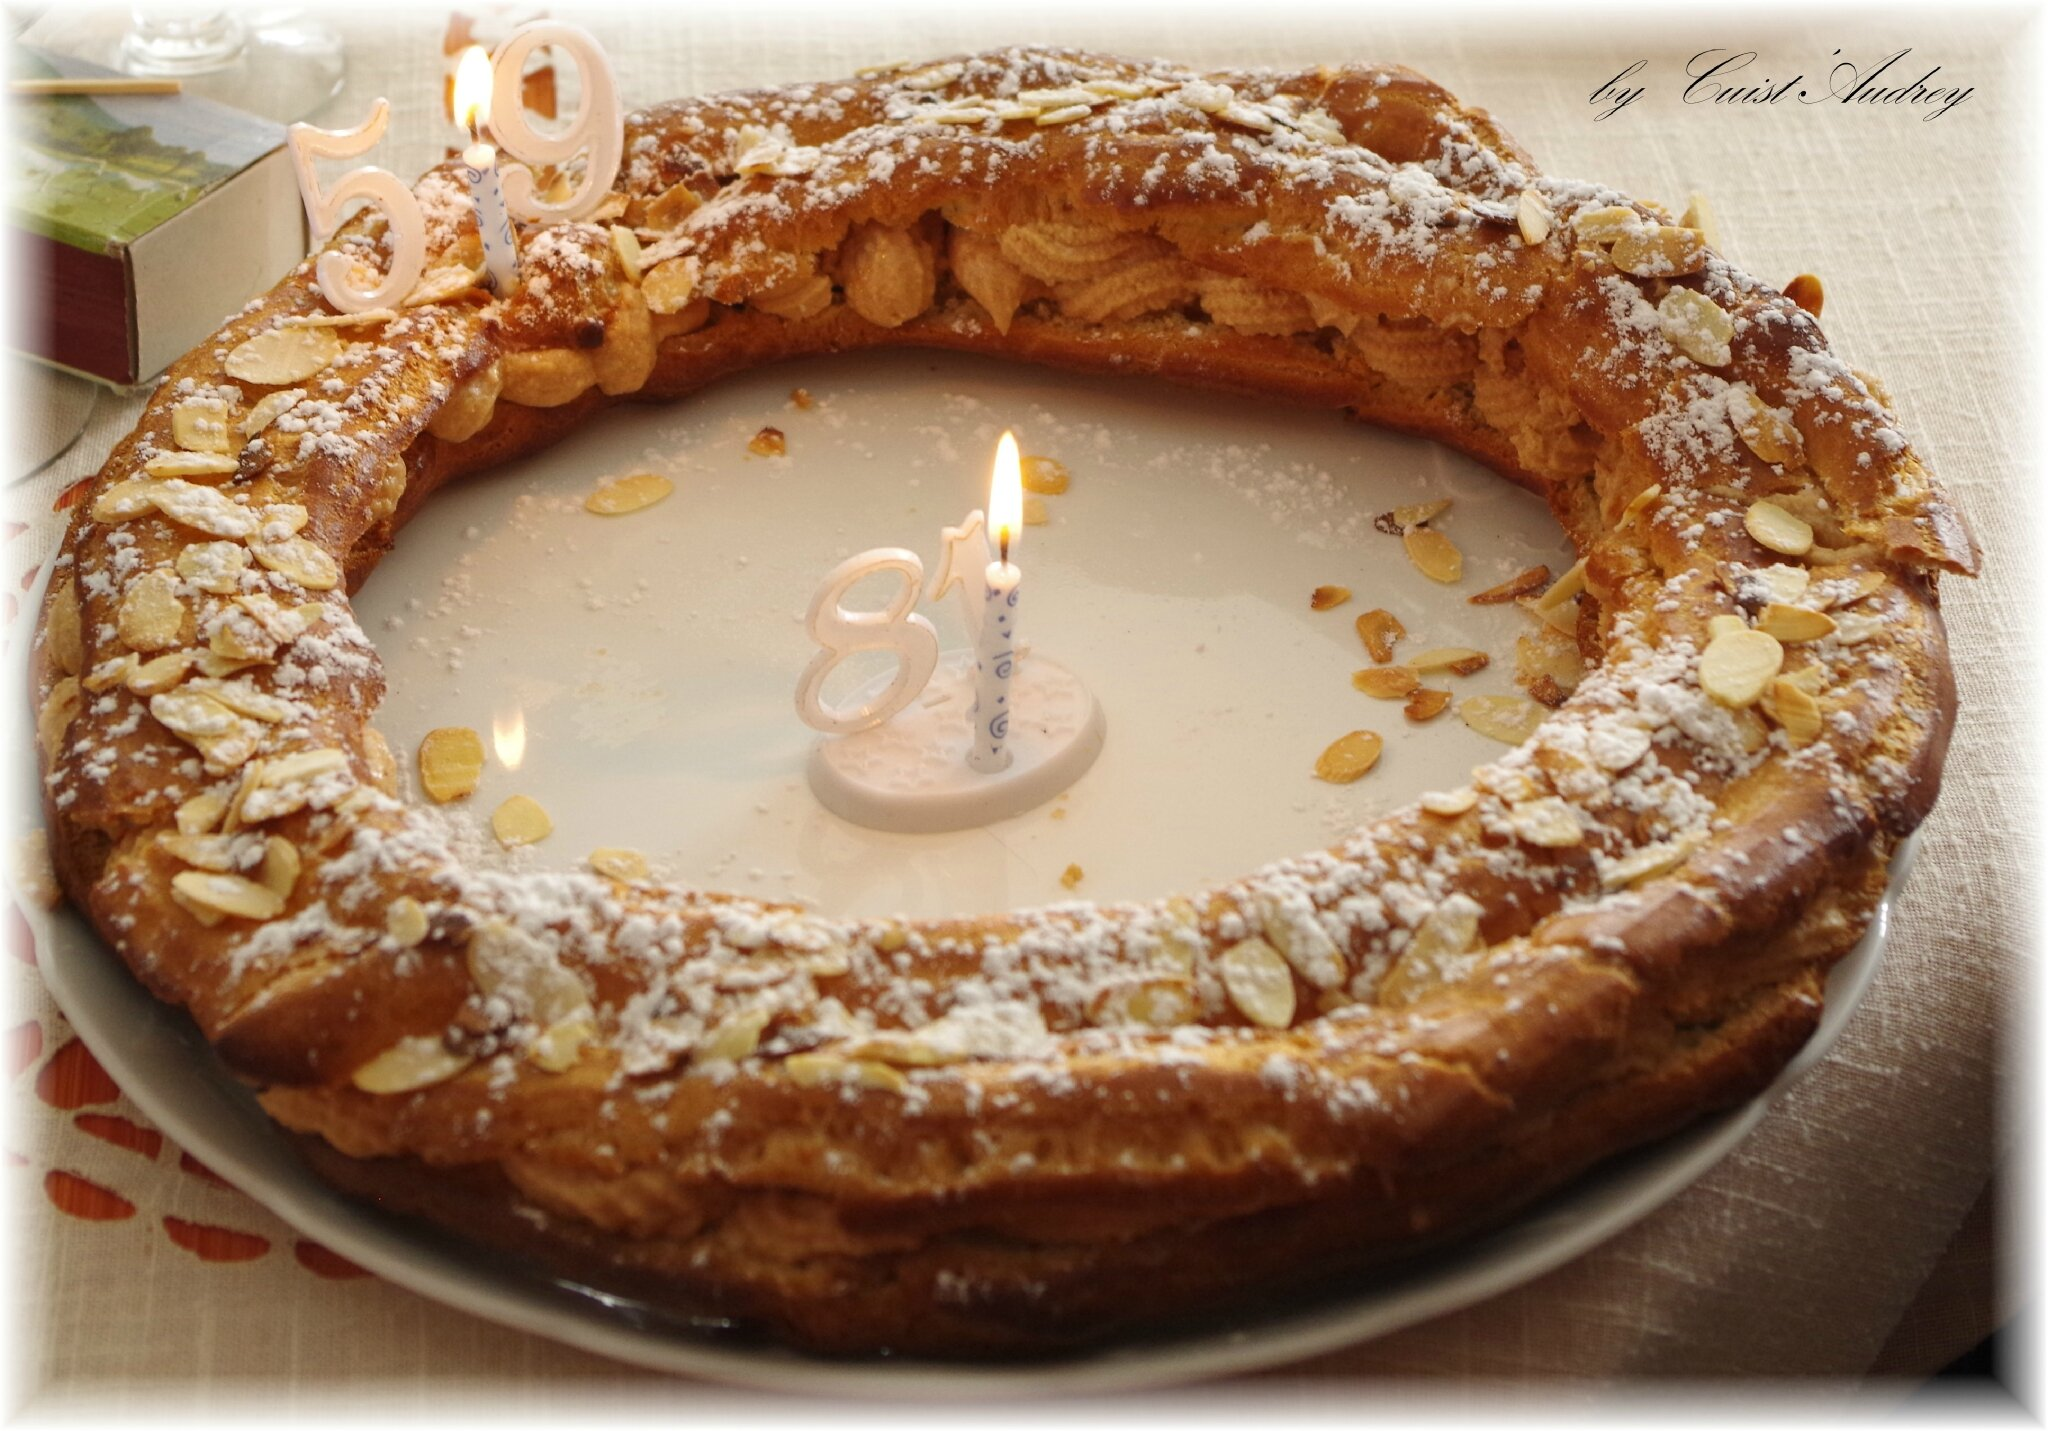 Paris-Brest selon Christophe Felder